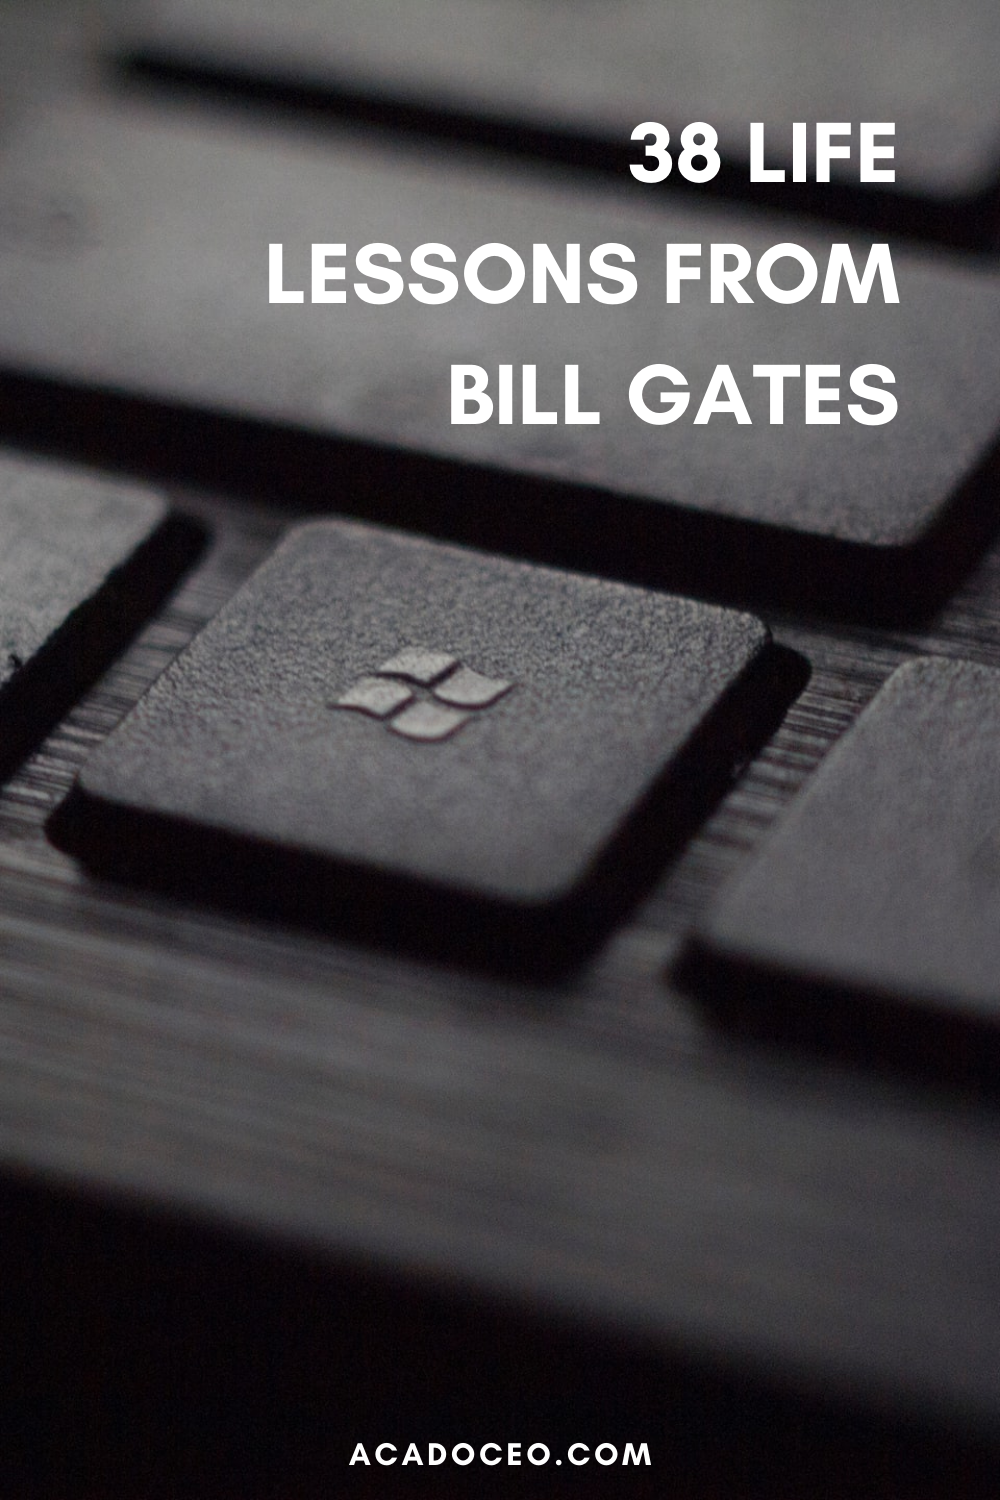 38 LIFE LESSONS FROM BILL GATES